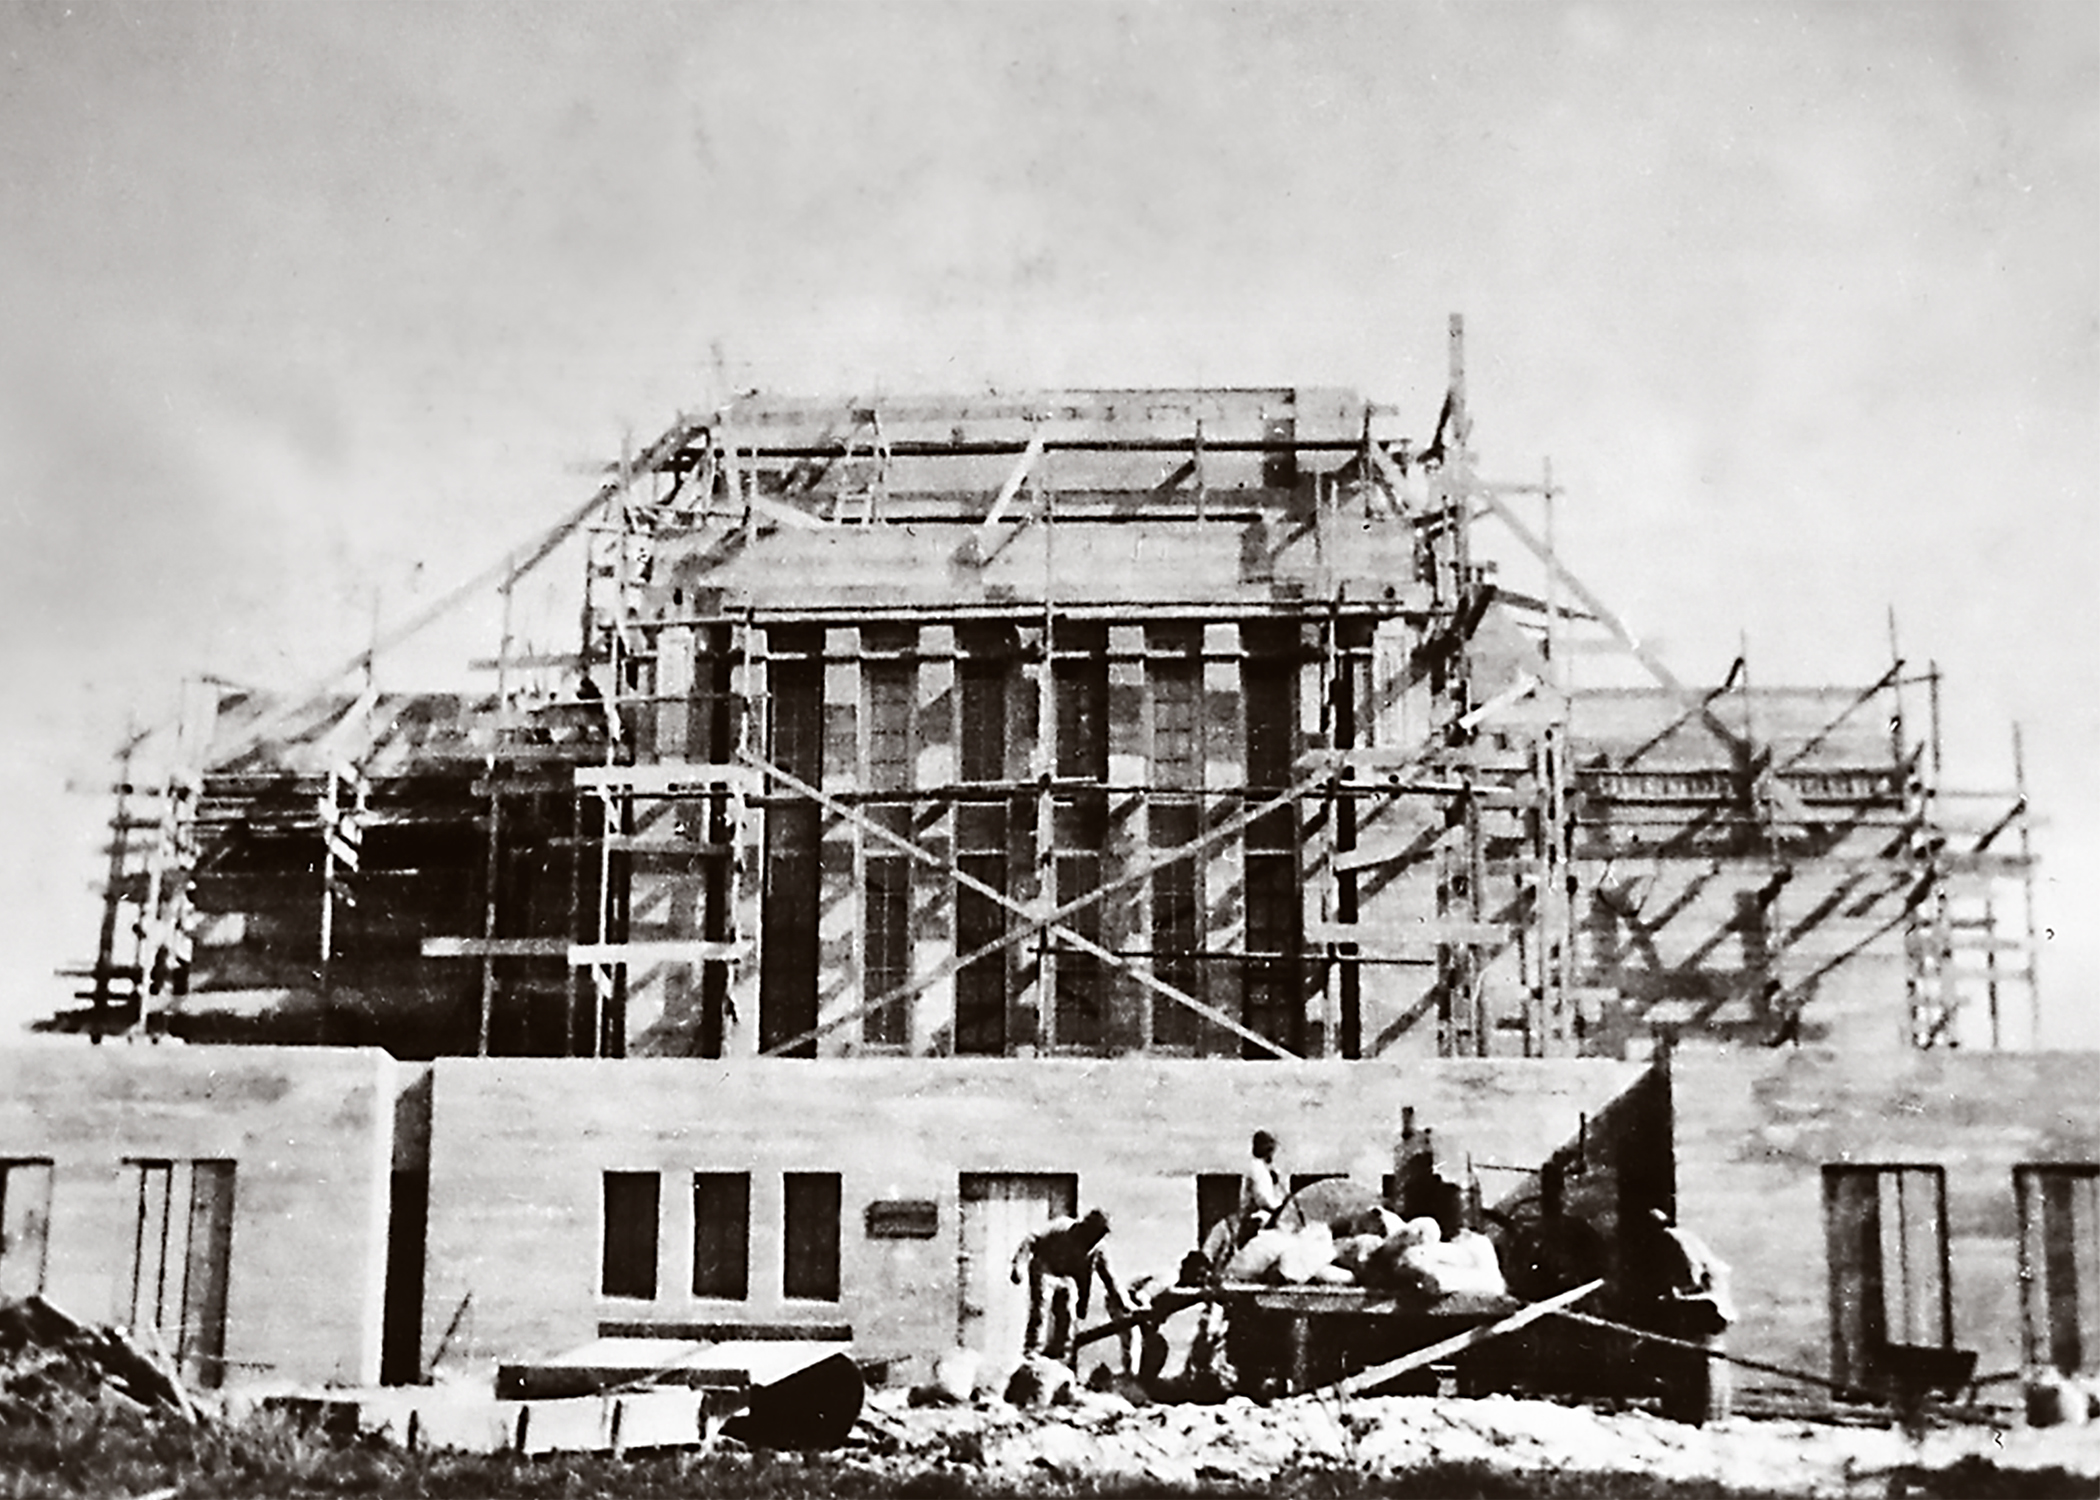 This 1916 photo shows workers preparing material to finish raising the walls of the Laie Hawaii Temple. The Church contracted with a contemporary Massachusetts Institute of Technology (MIT) engineering graduate who had returned home to Honolulu just prior to this to use the then-new technique of poured-in-place cement with steel reinforcing rods (rebar) on the project. Almost all of the work, however, had to be done by hand, without the use of power tools.